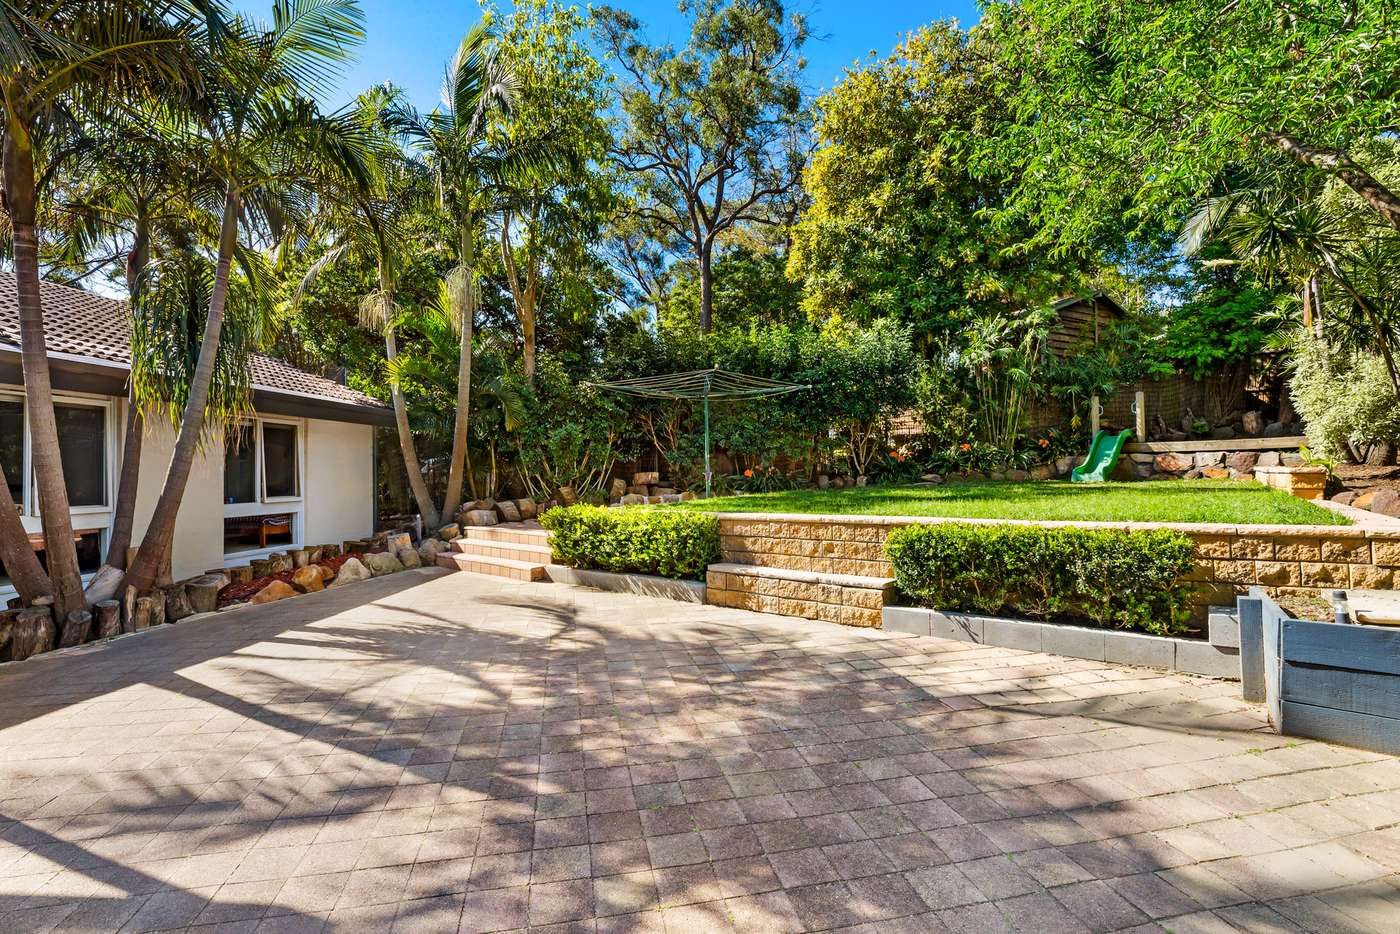 Main view of Homely house listing, 3 Larra Crescent, North Rocks NSW 2151